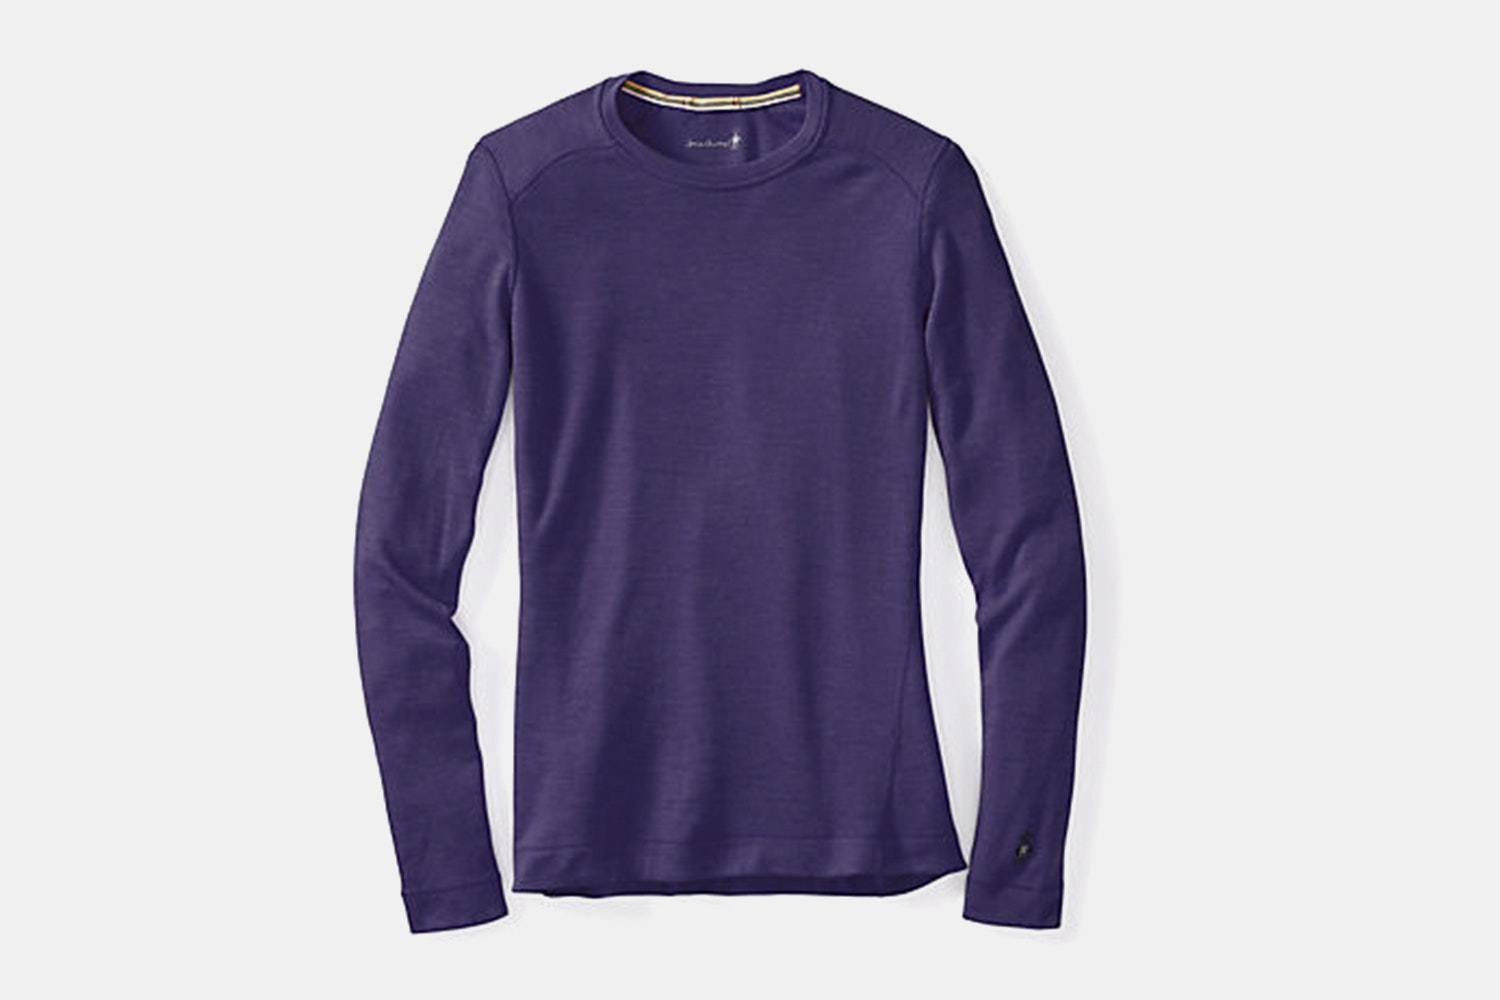 Women's, Mountain Purple Heather